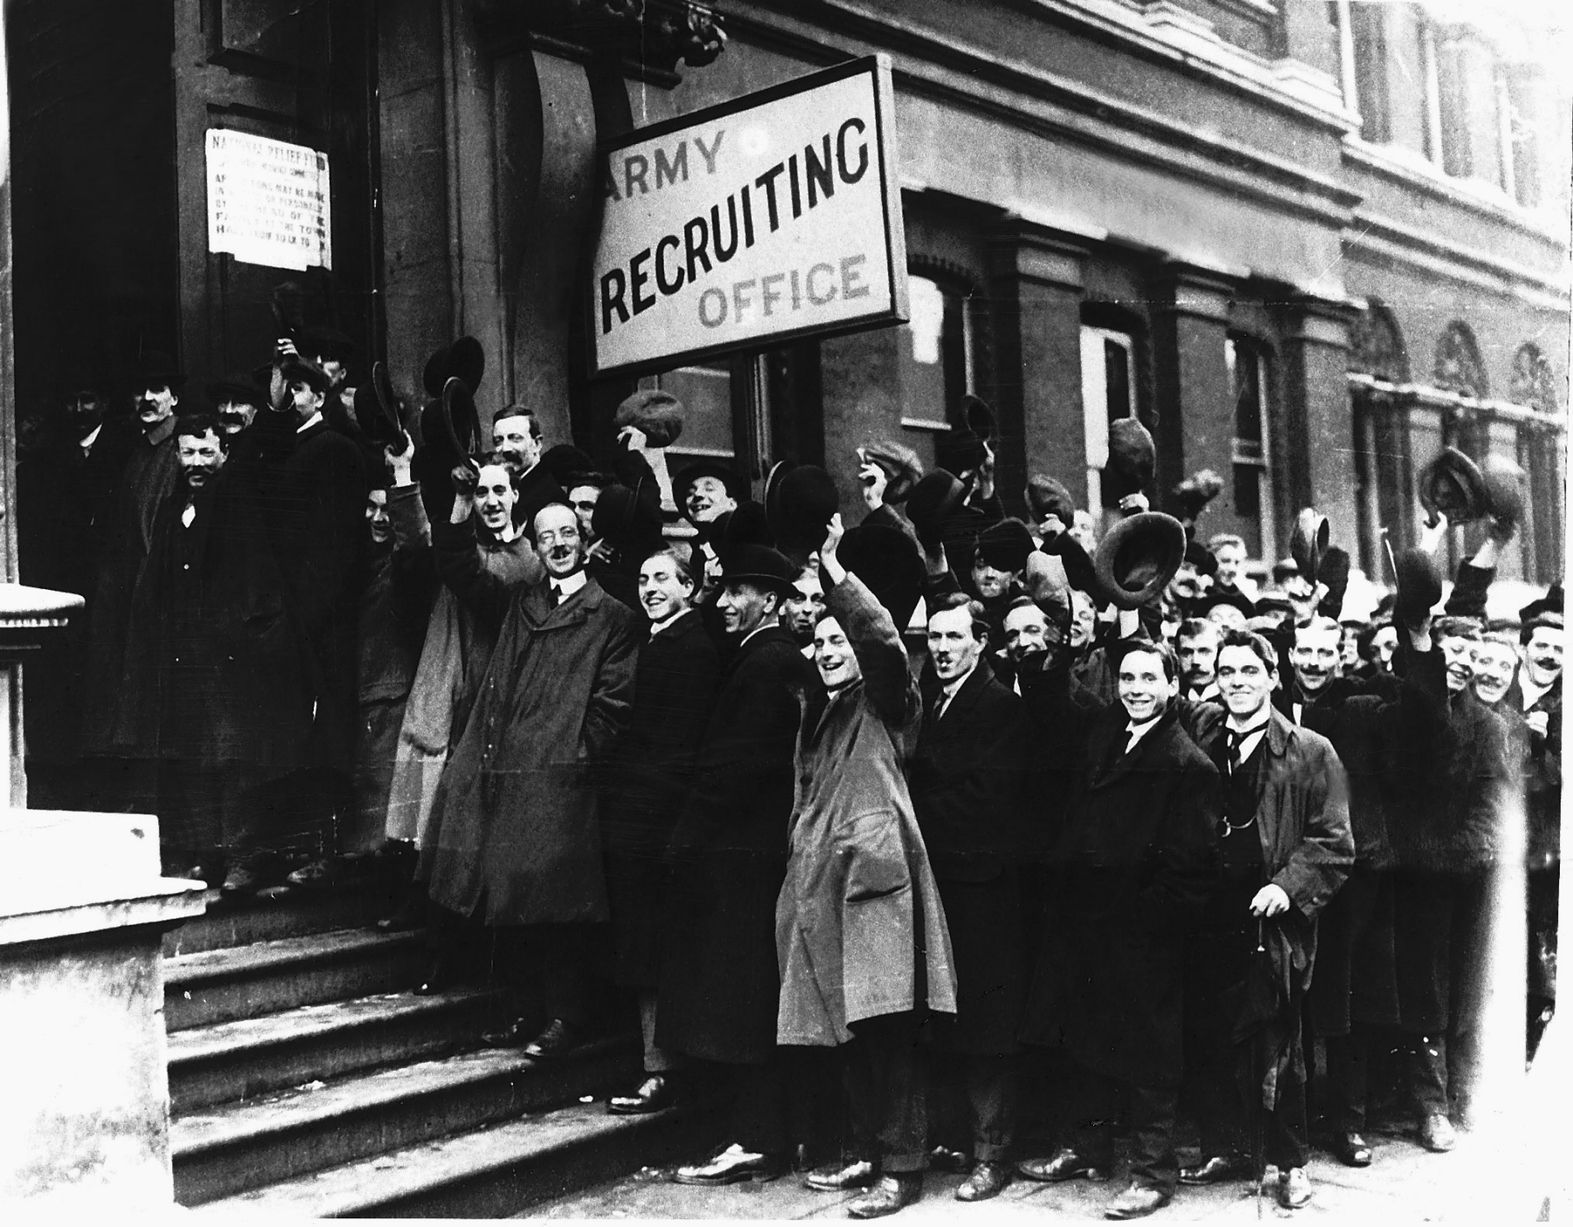 Recruiting office in 1914